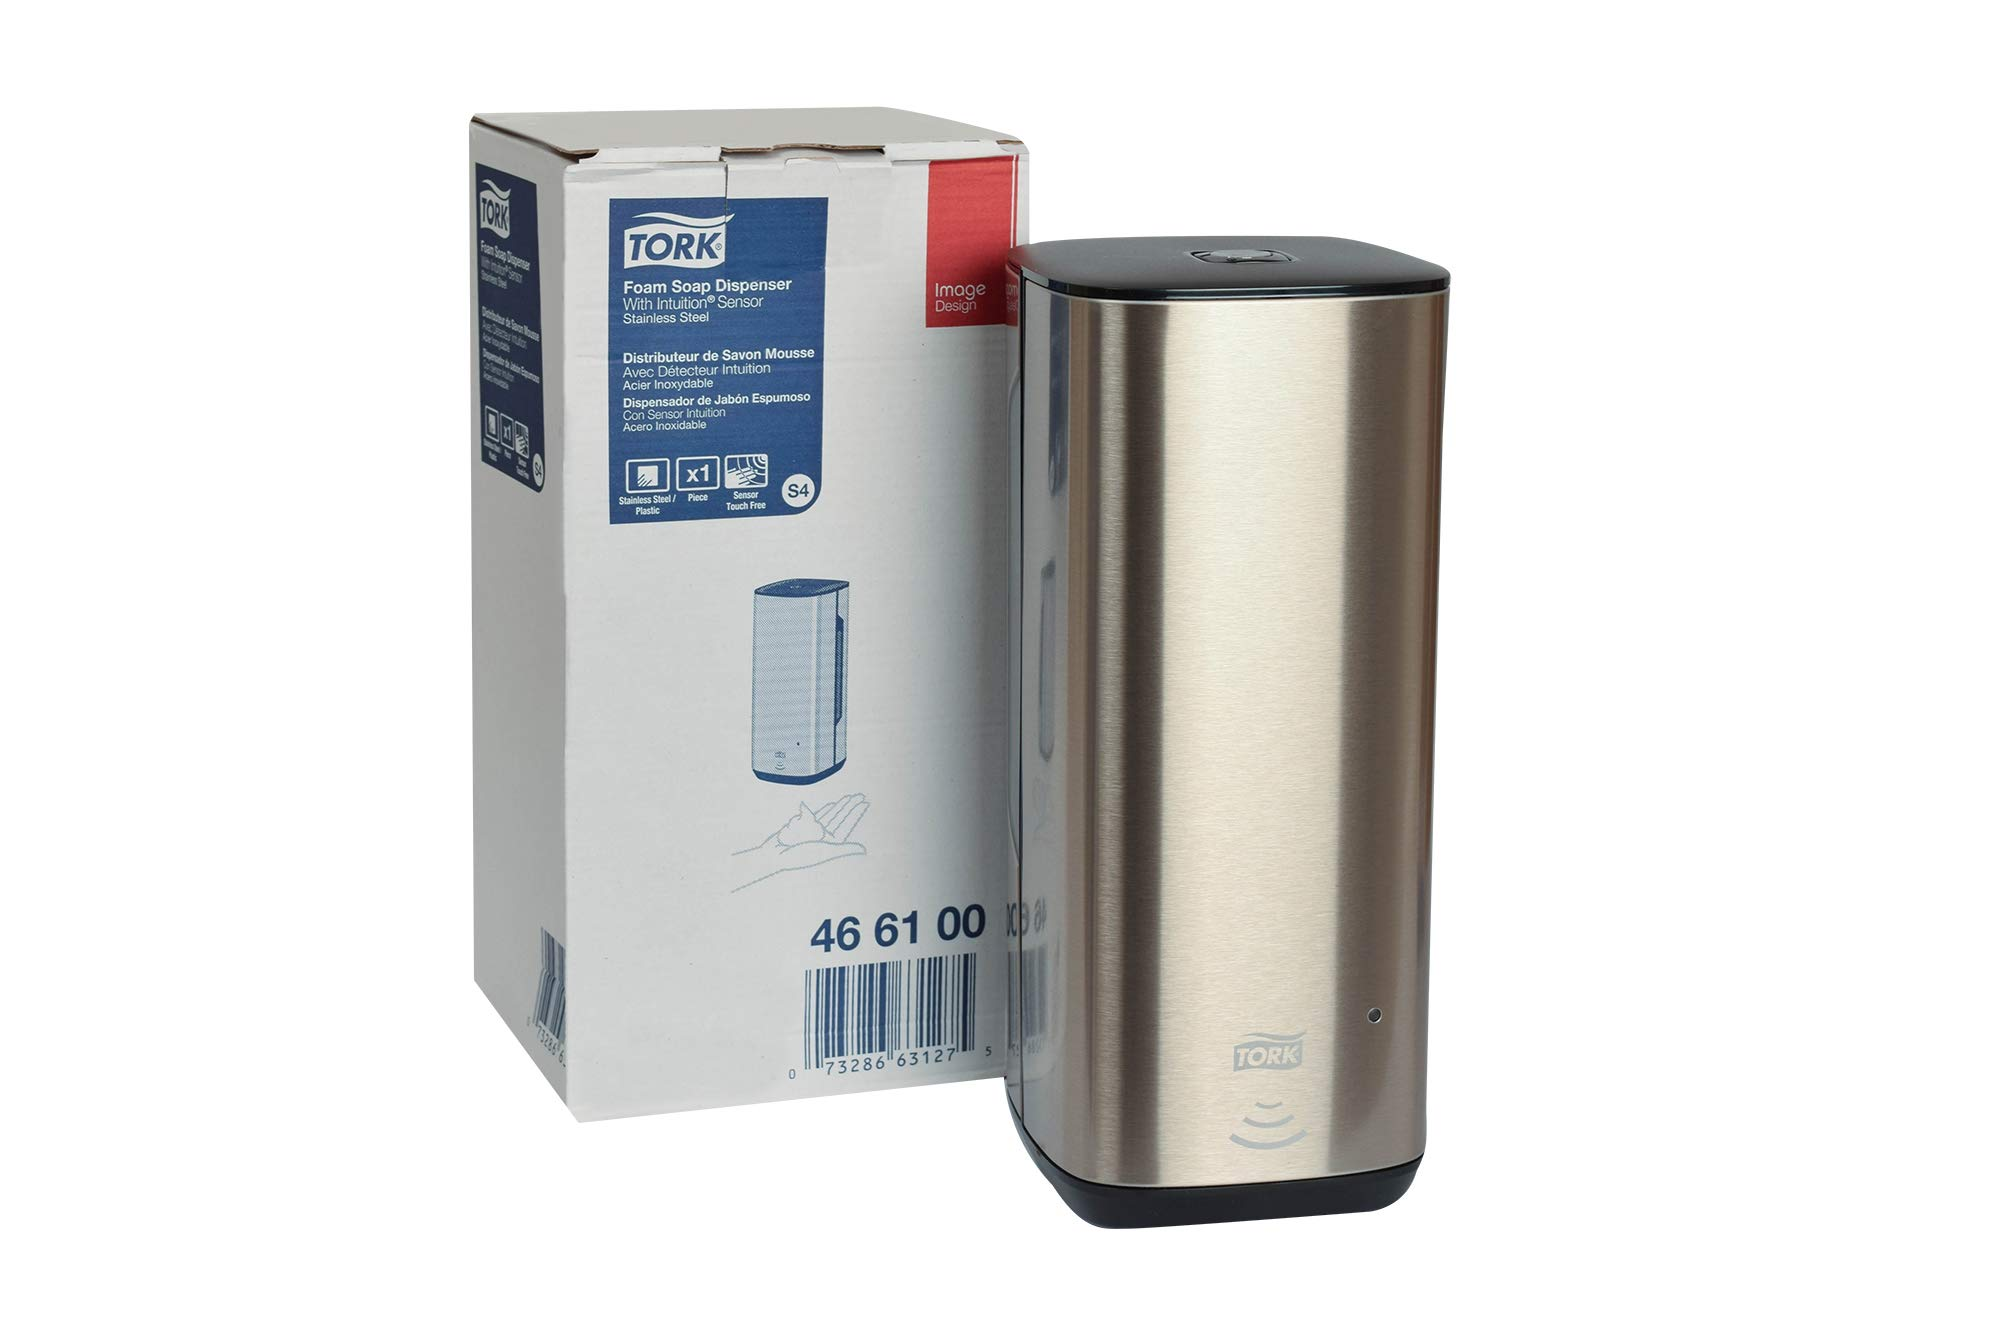 Tork 466100 Image Design Foam Skincare Automatic Dispenser with Intuition Sensor, 10.625 Height x 4.5'' Width x 5.125'' Diameter, Stainless Steel, for use with Tork 401211, 401212, 401213 or 400216